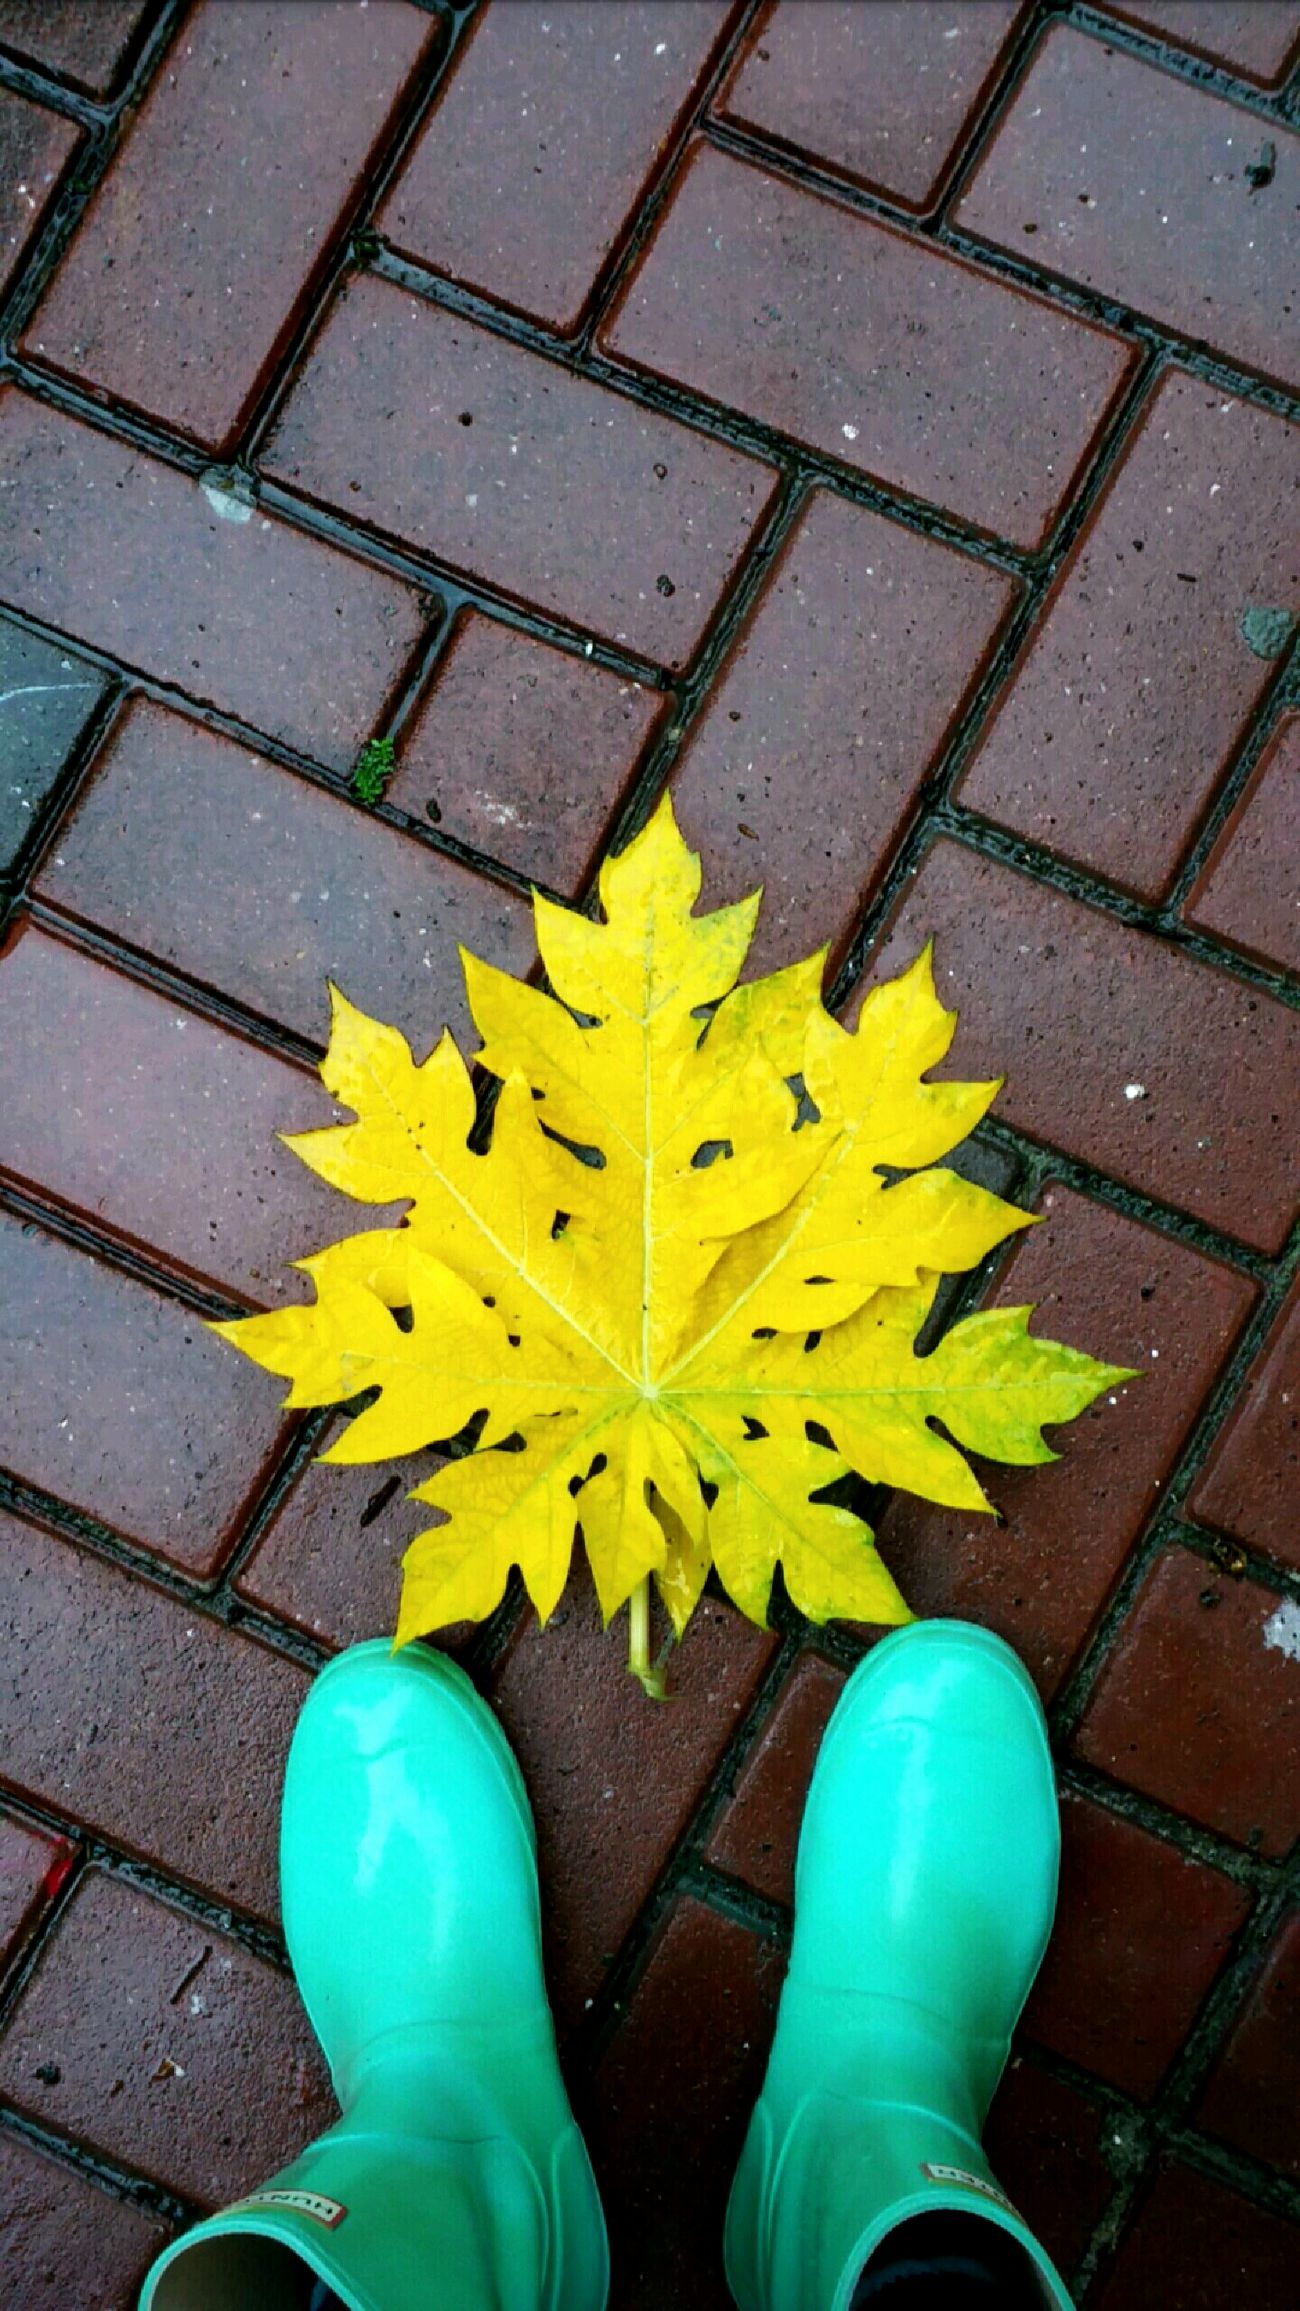 Having donned my Mint Green Wellies  , I chanced upon a vivid Yellow... Fractal Leaf? (I'm no botanist.)